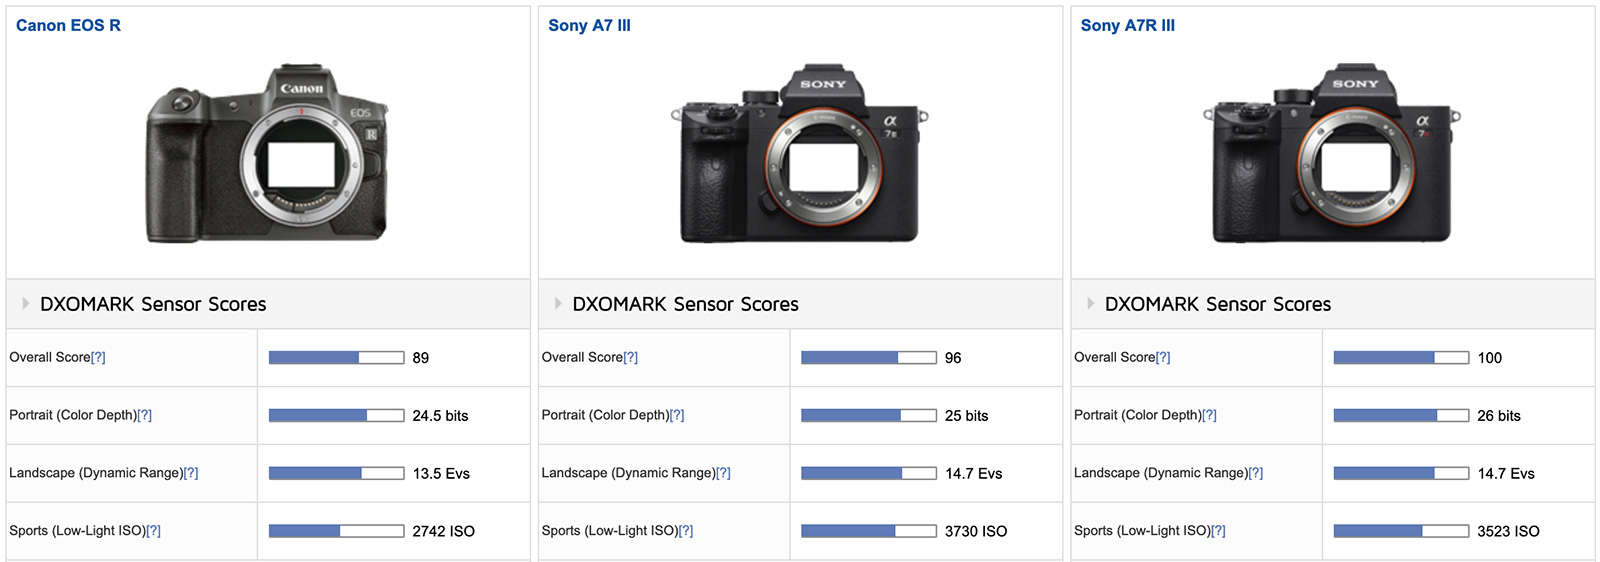 Canon EOS R camera tested at DxOMark (compared with Nikon